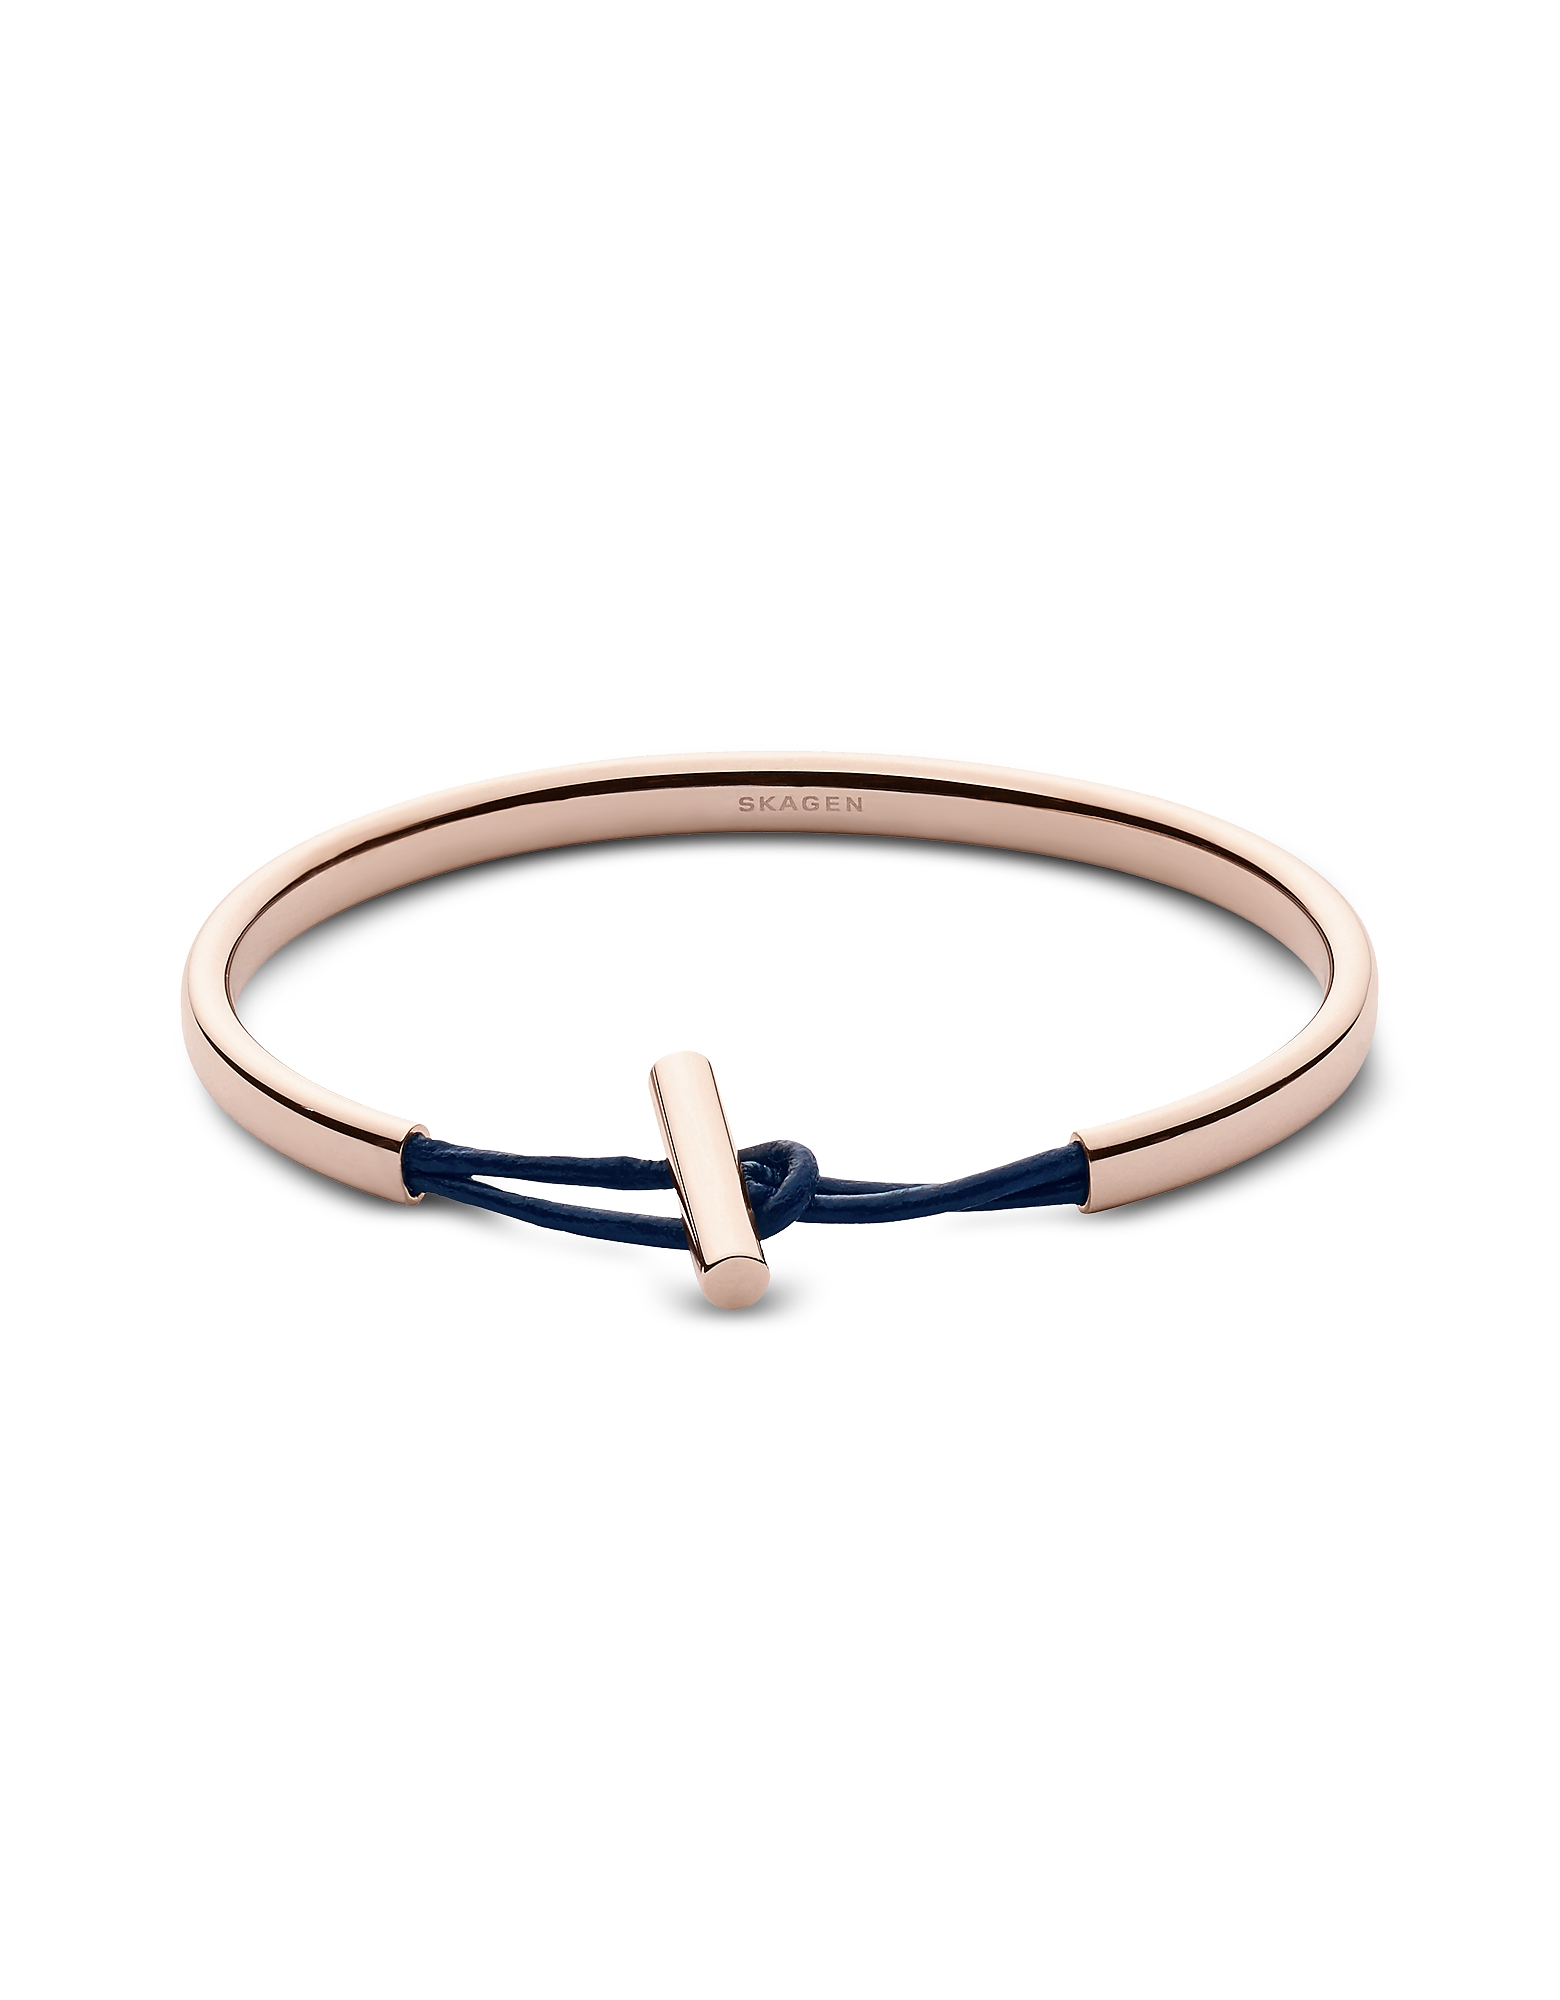 Skagen Bracelets, Anette Rose Tone Steel and Leather Bangle Bracelet